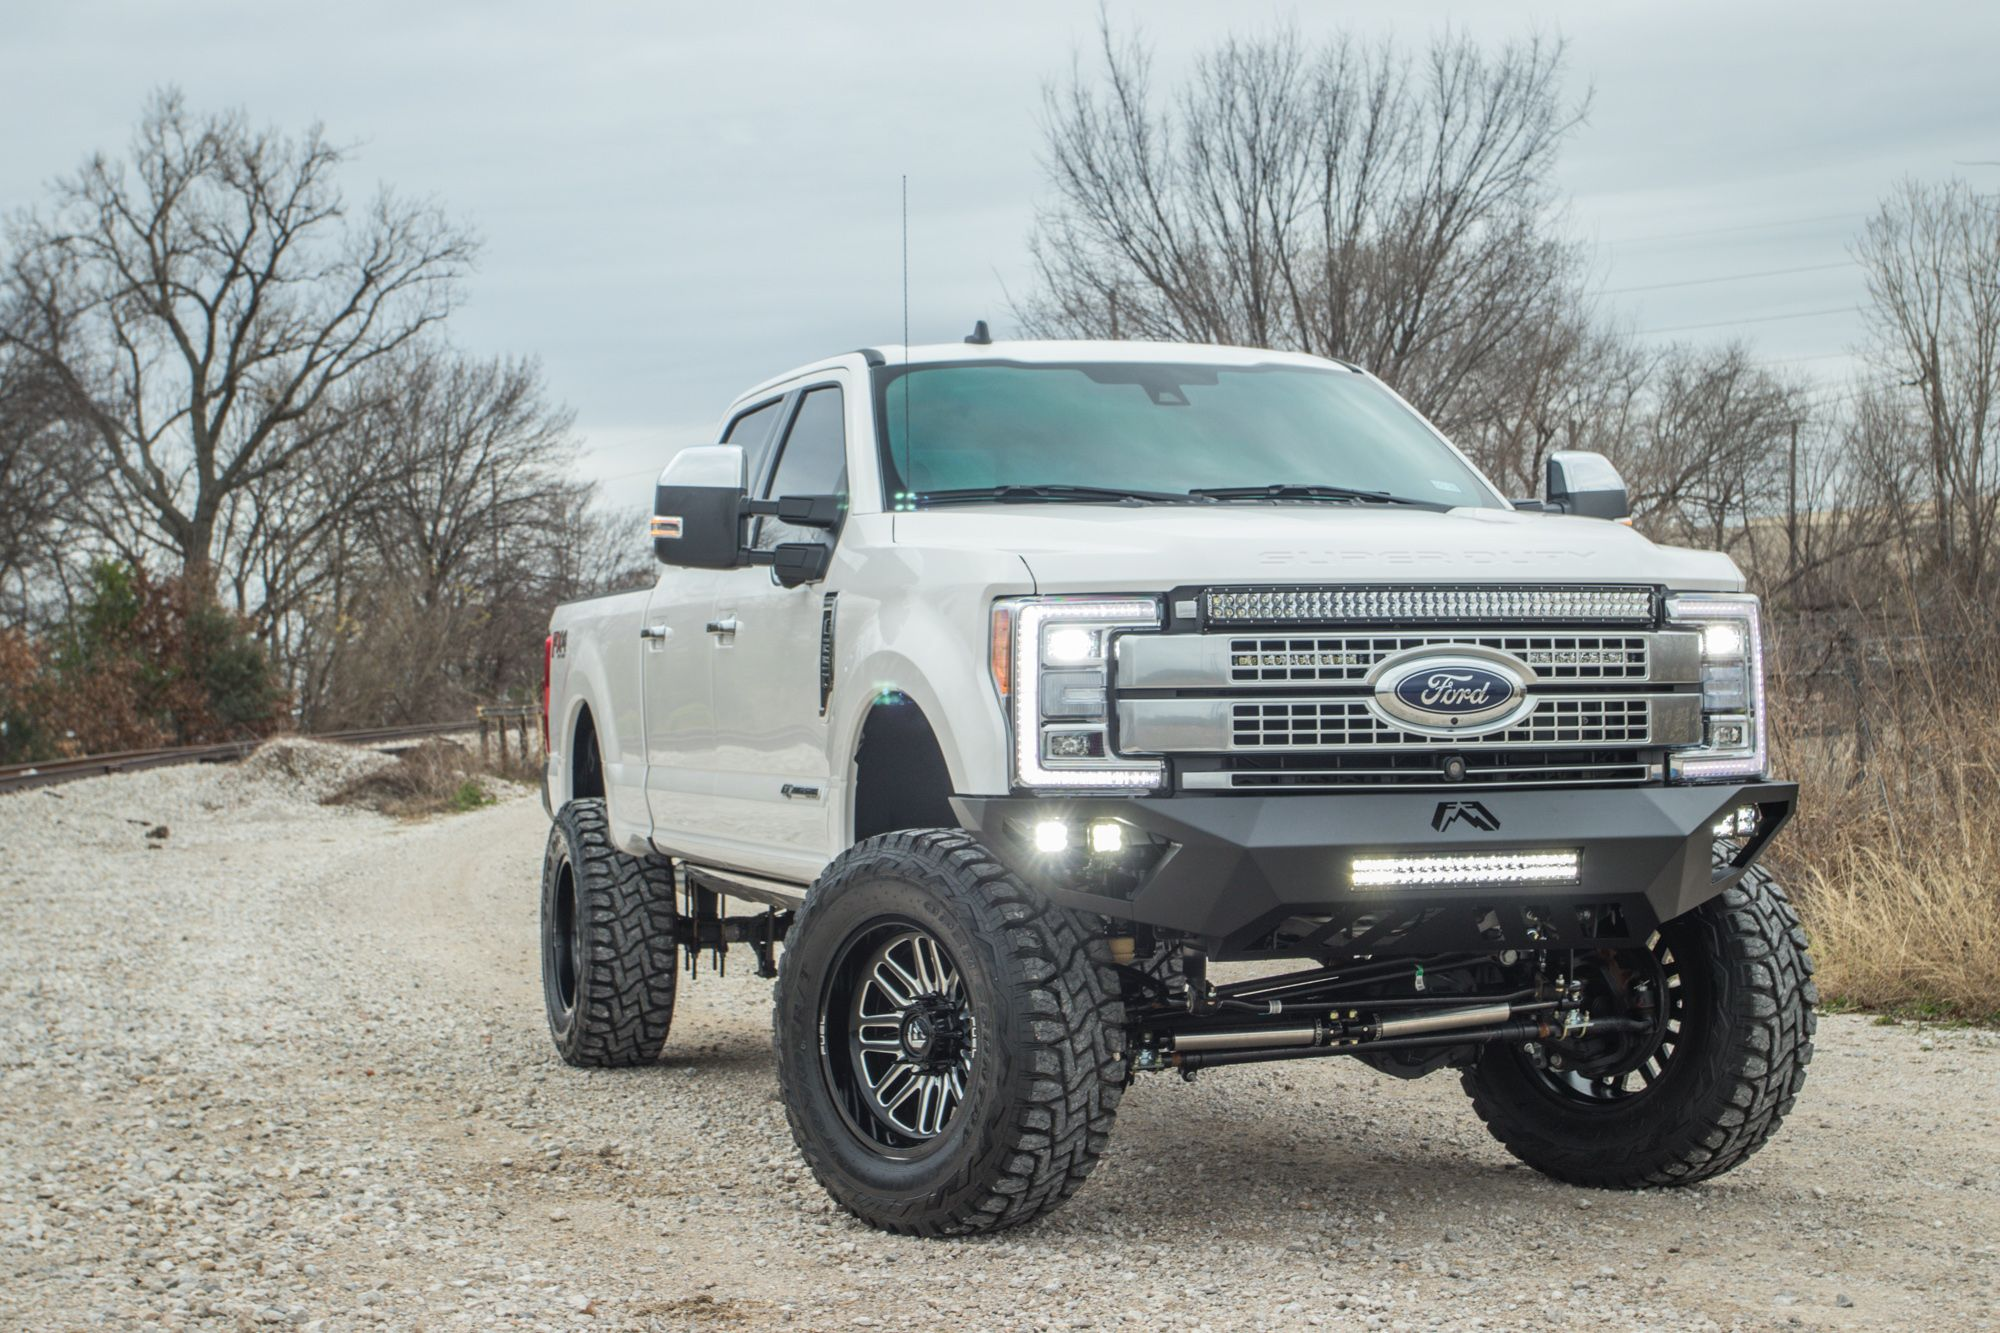 FAB FOURS VENGEANCE BUMPERS ON A 2019 FORD F250 IN WHITE